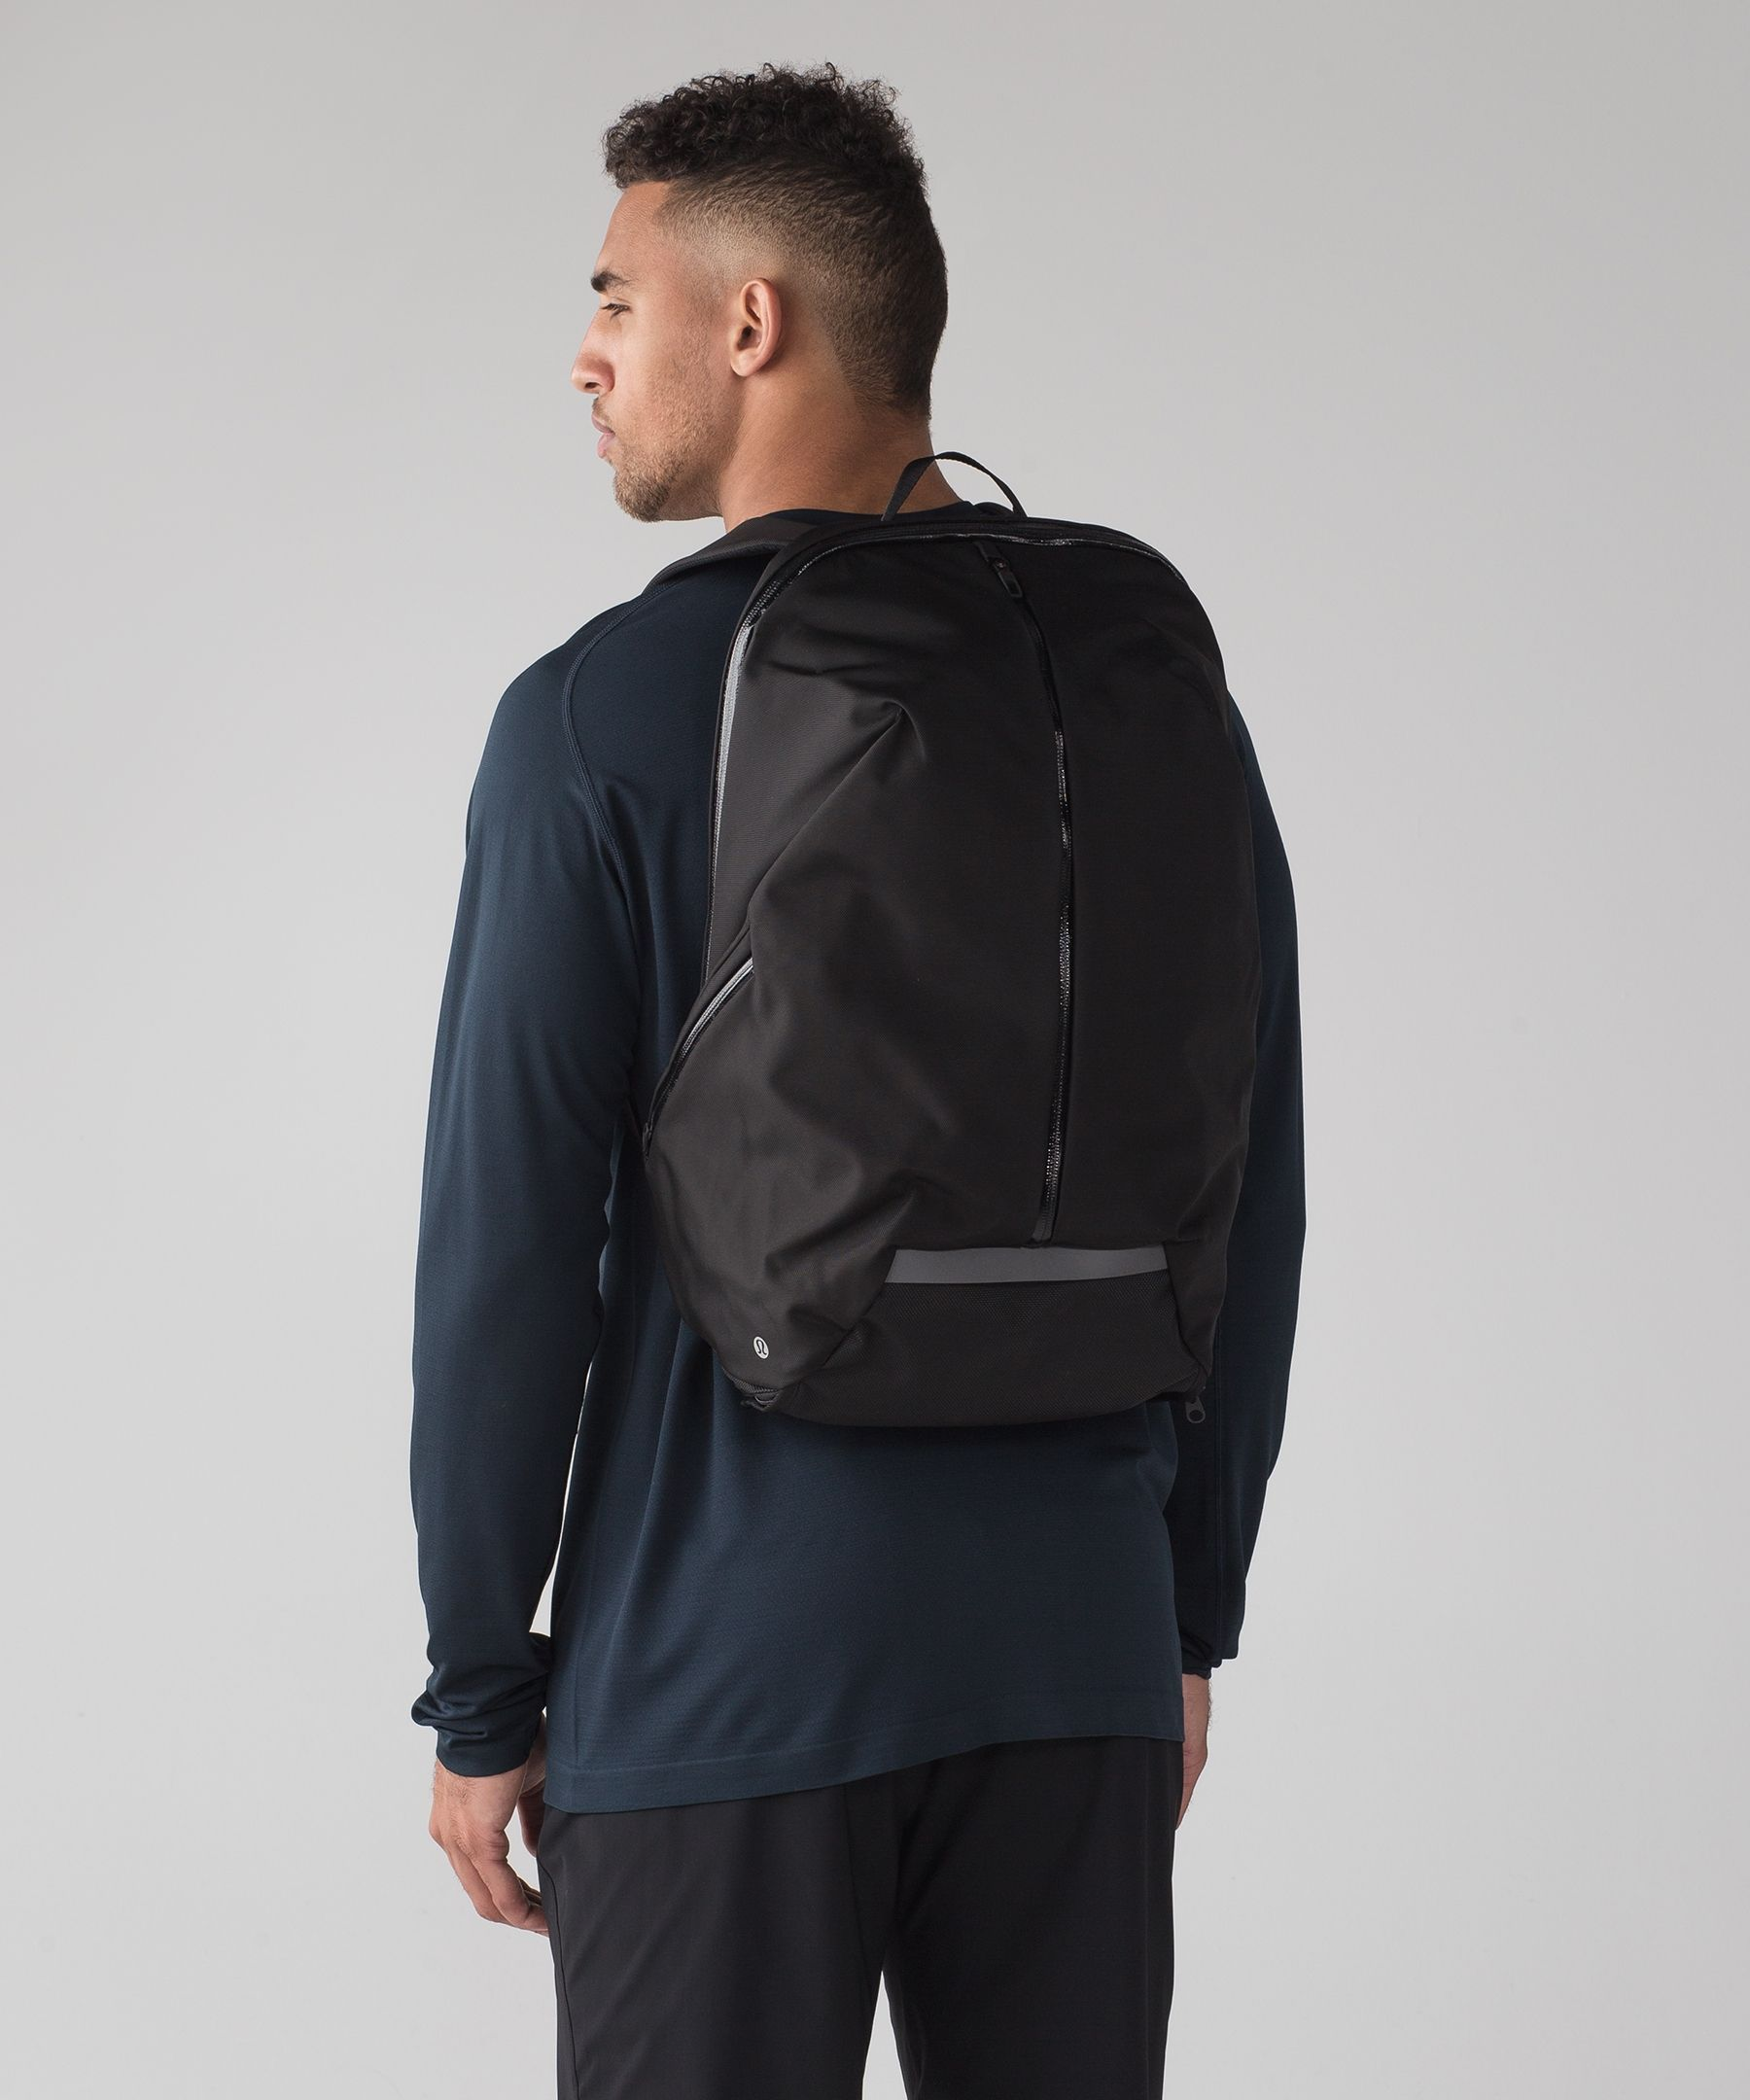 4f0d5fe37d Men's Backpack - (Black) - Para Backpack - lululemon | Products ...